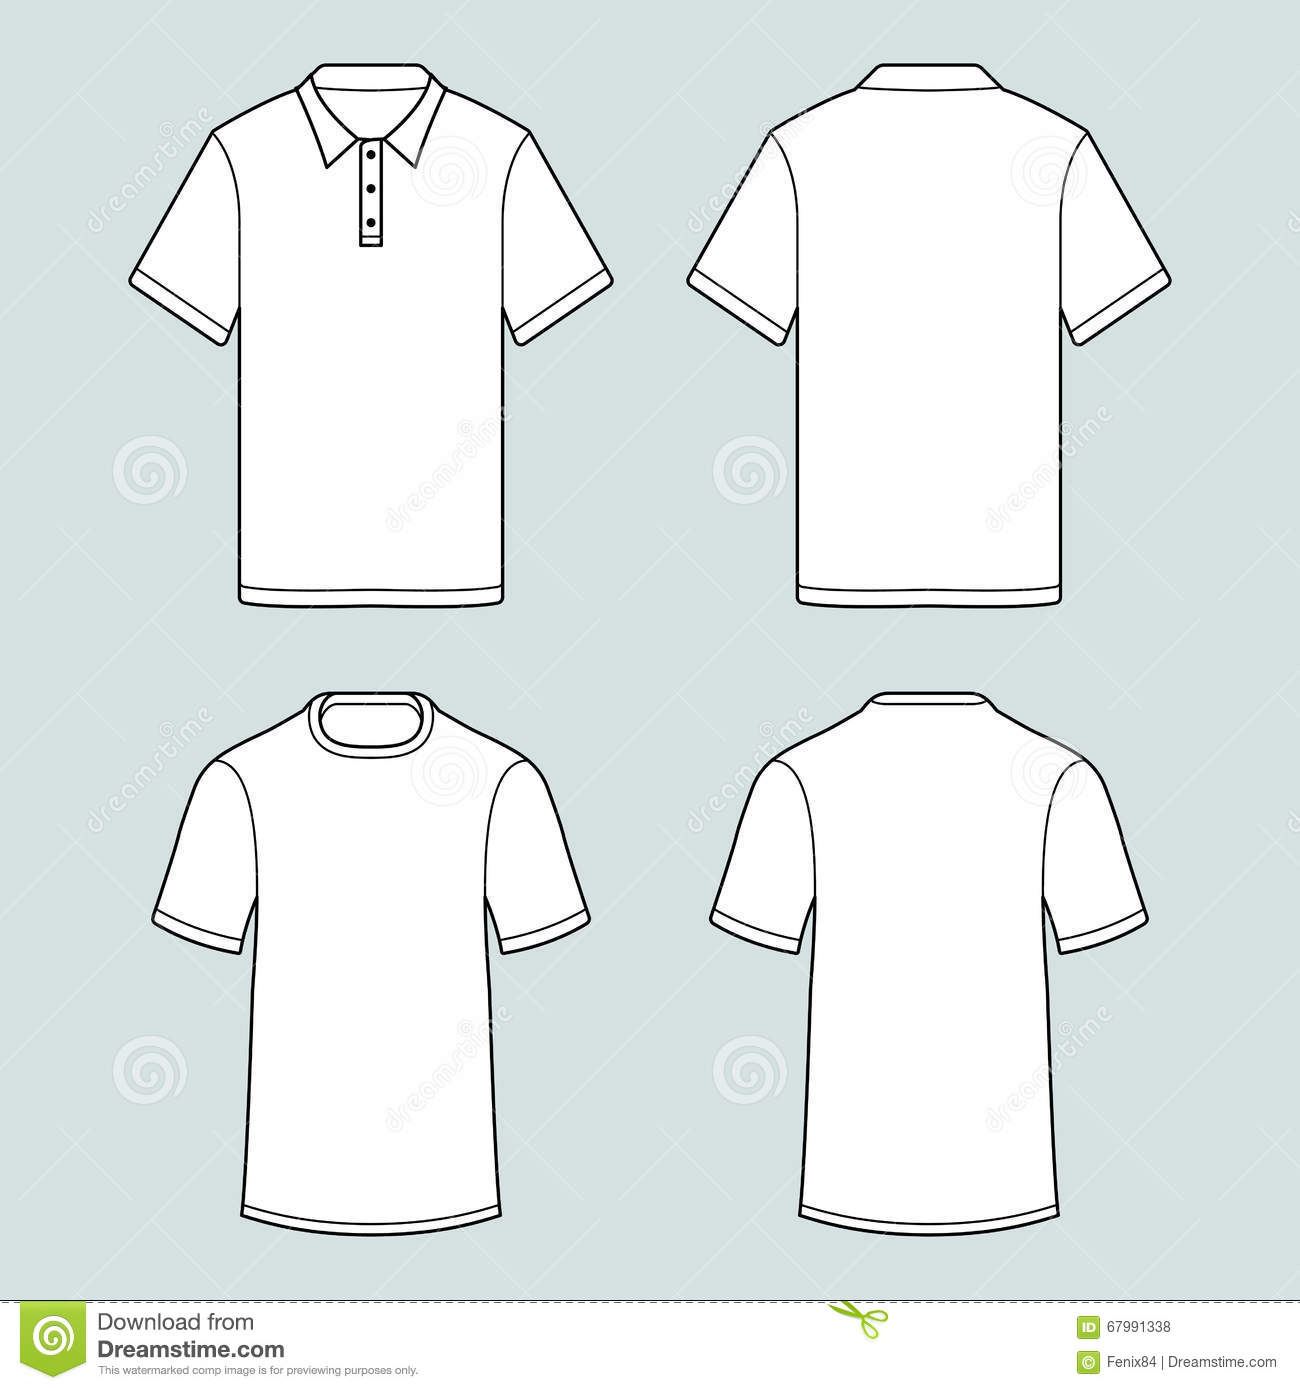 Men 39 s white short sleeve polo shirt vector illustration for Polo shirt design template